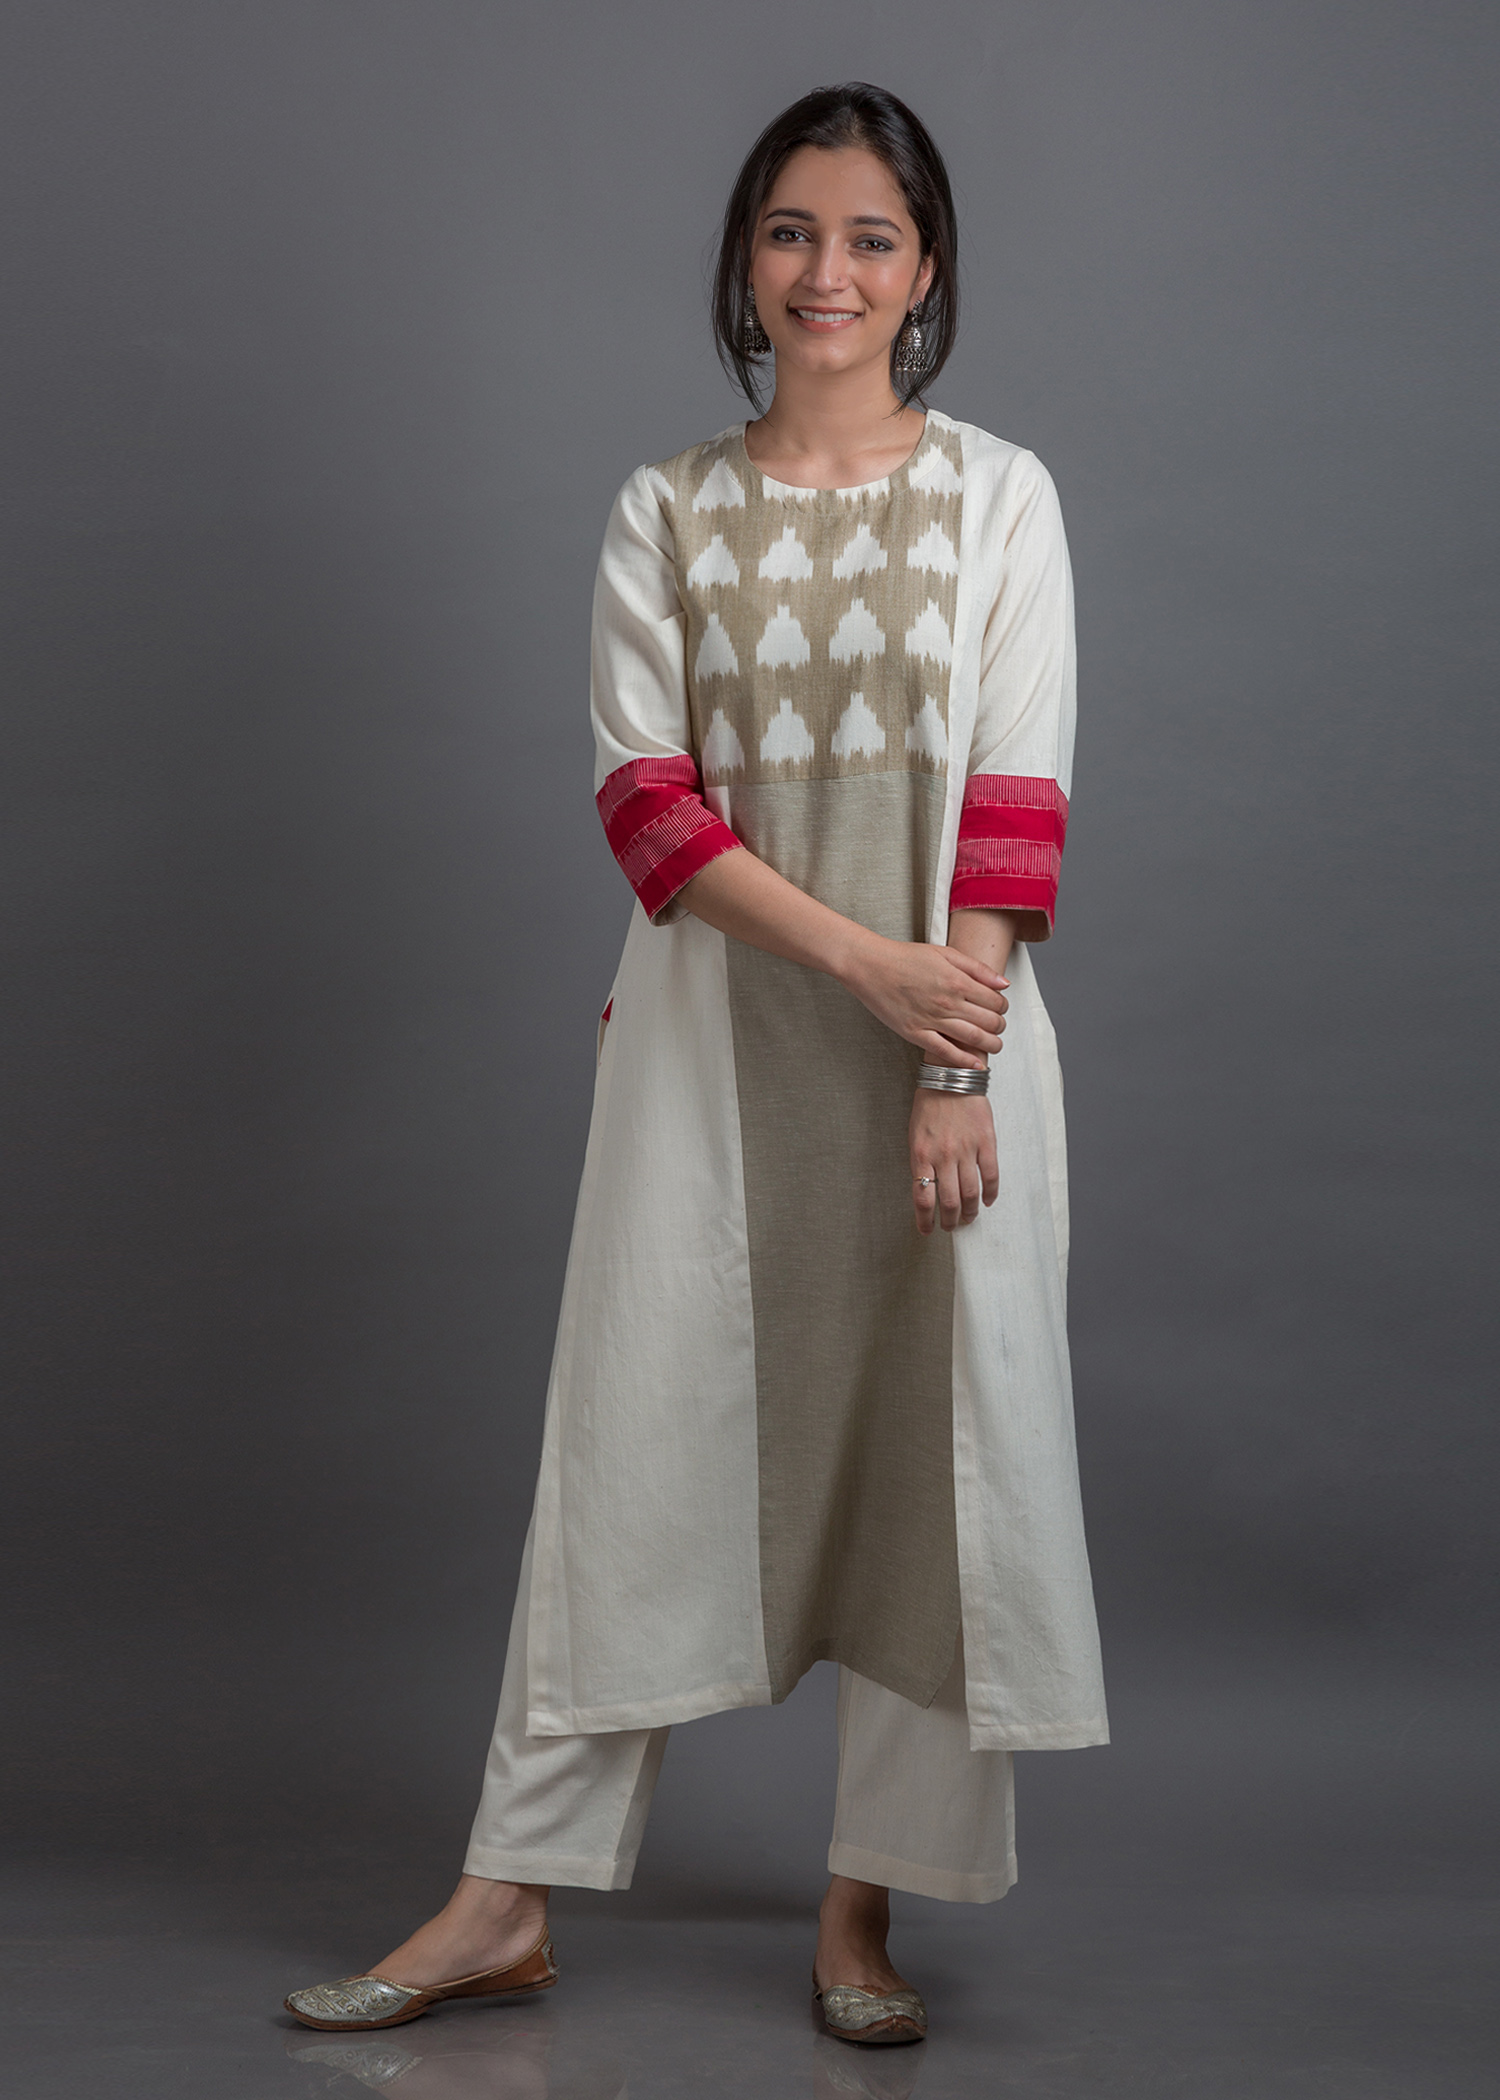 Mogra Edit - Beige & Off-White Half Ikat Yolk Handwoven Cotton Kurta with Red Ikat Cuffs